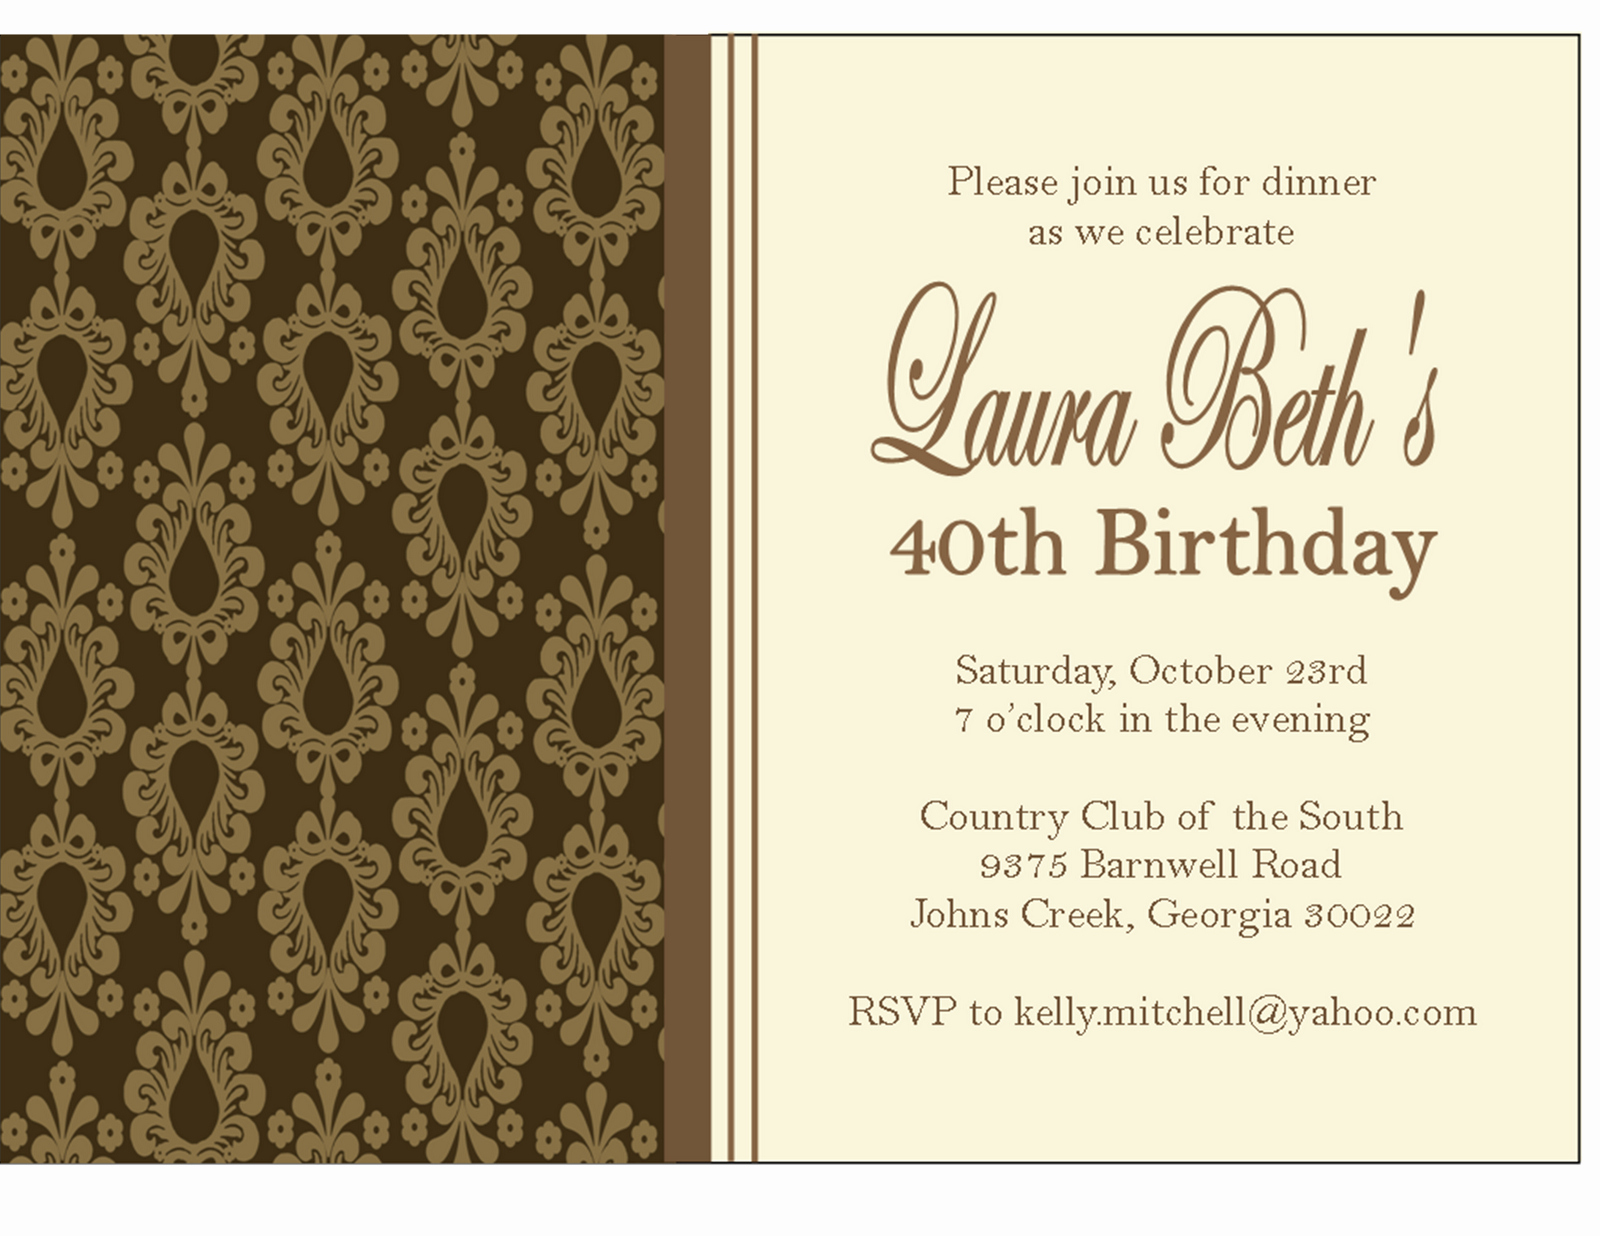 Birthday Dinner Invitation Wording Unique the Sweet Peach Paperie Damask Dinner Party Invitations